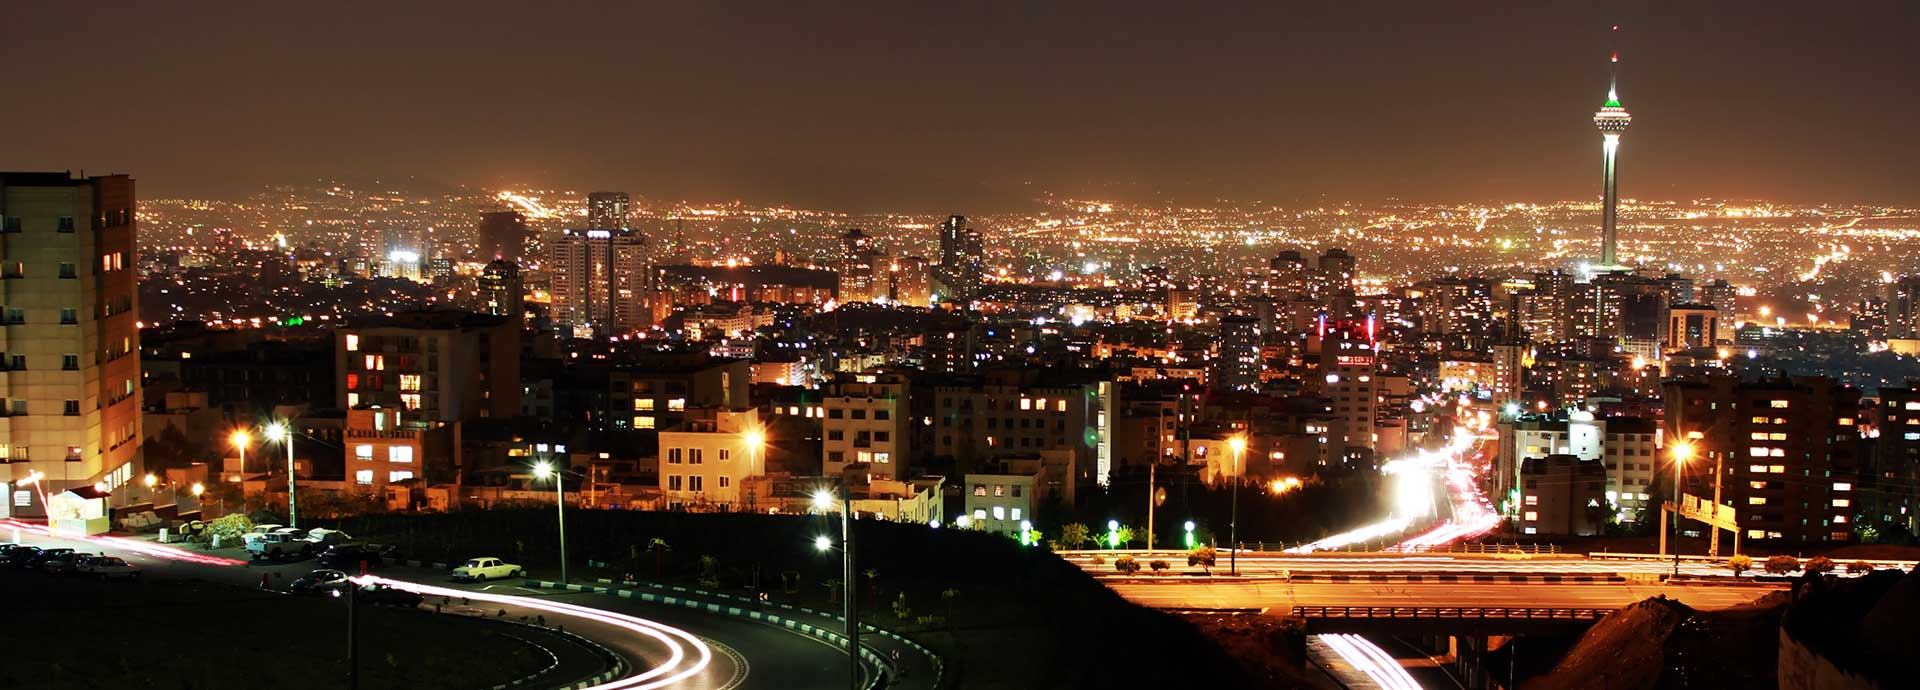 tehran skyline at night